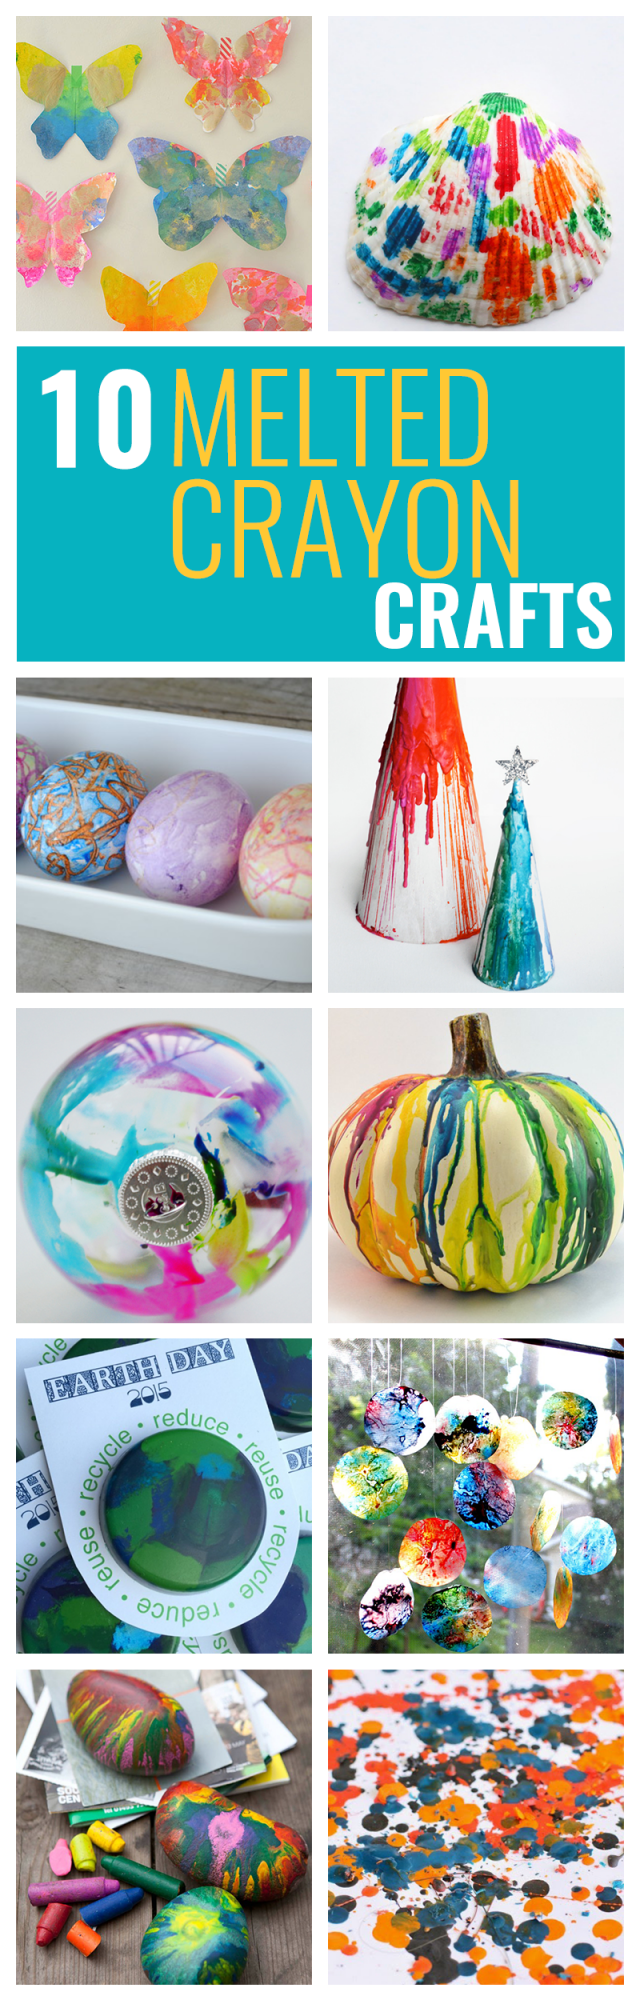 I love using crayons to make art. These melted crayon craft projects are perfect for an afternoon DIY.